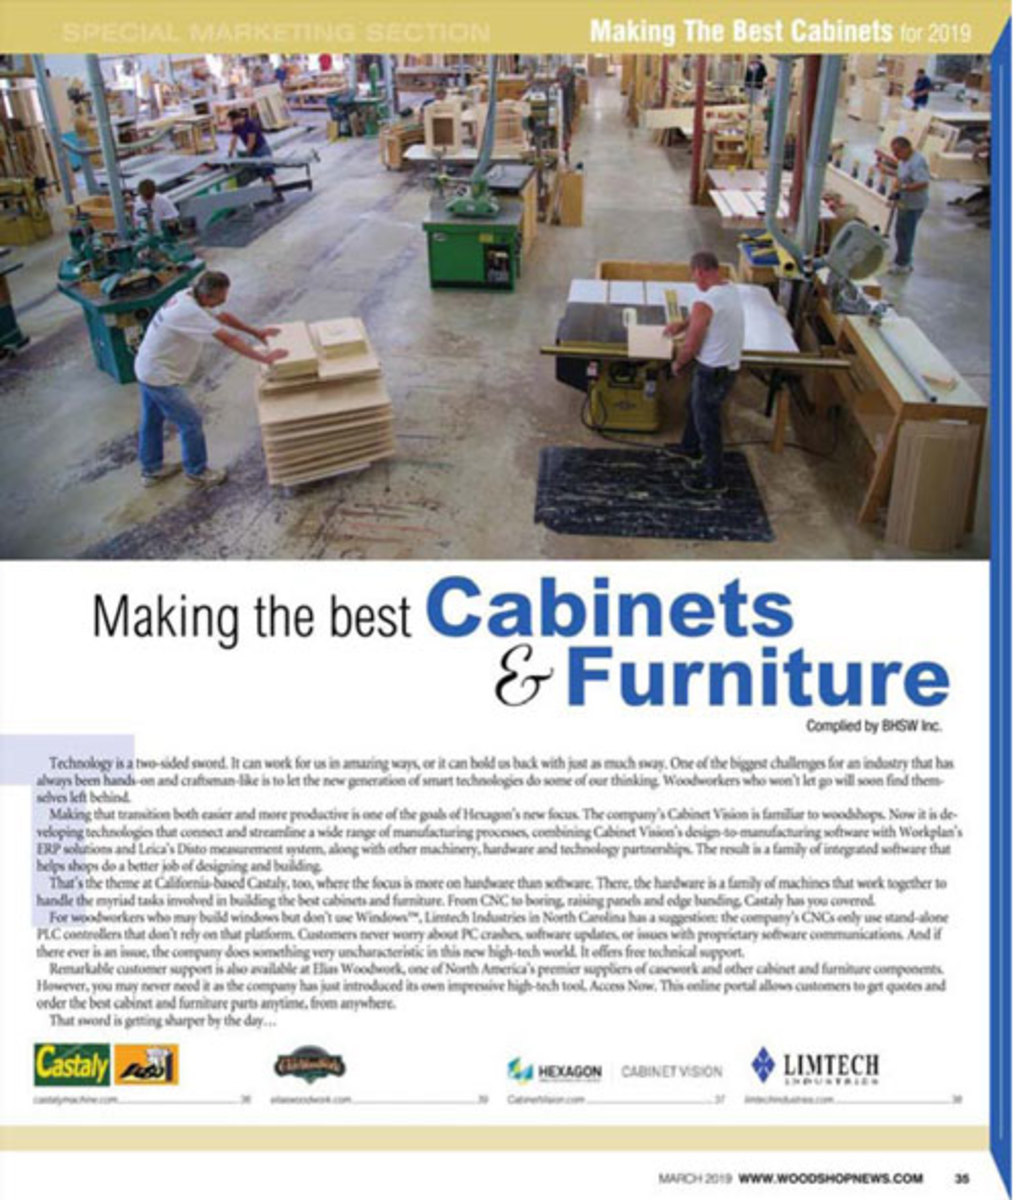 Wood-Shop-News-Making-the-Best-Cabinet-&-Furniture-2019